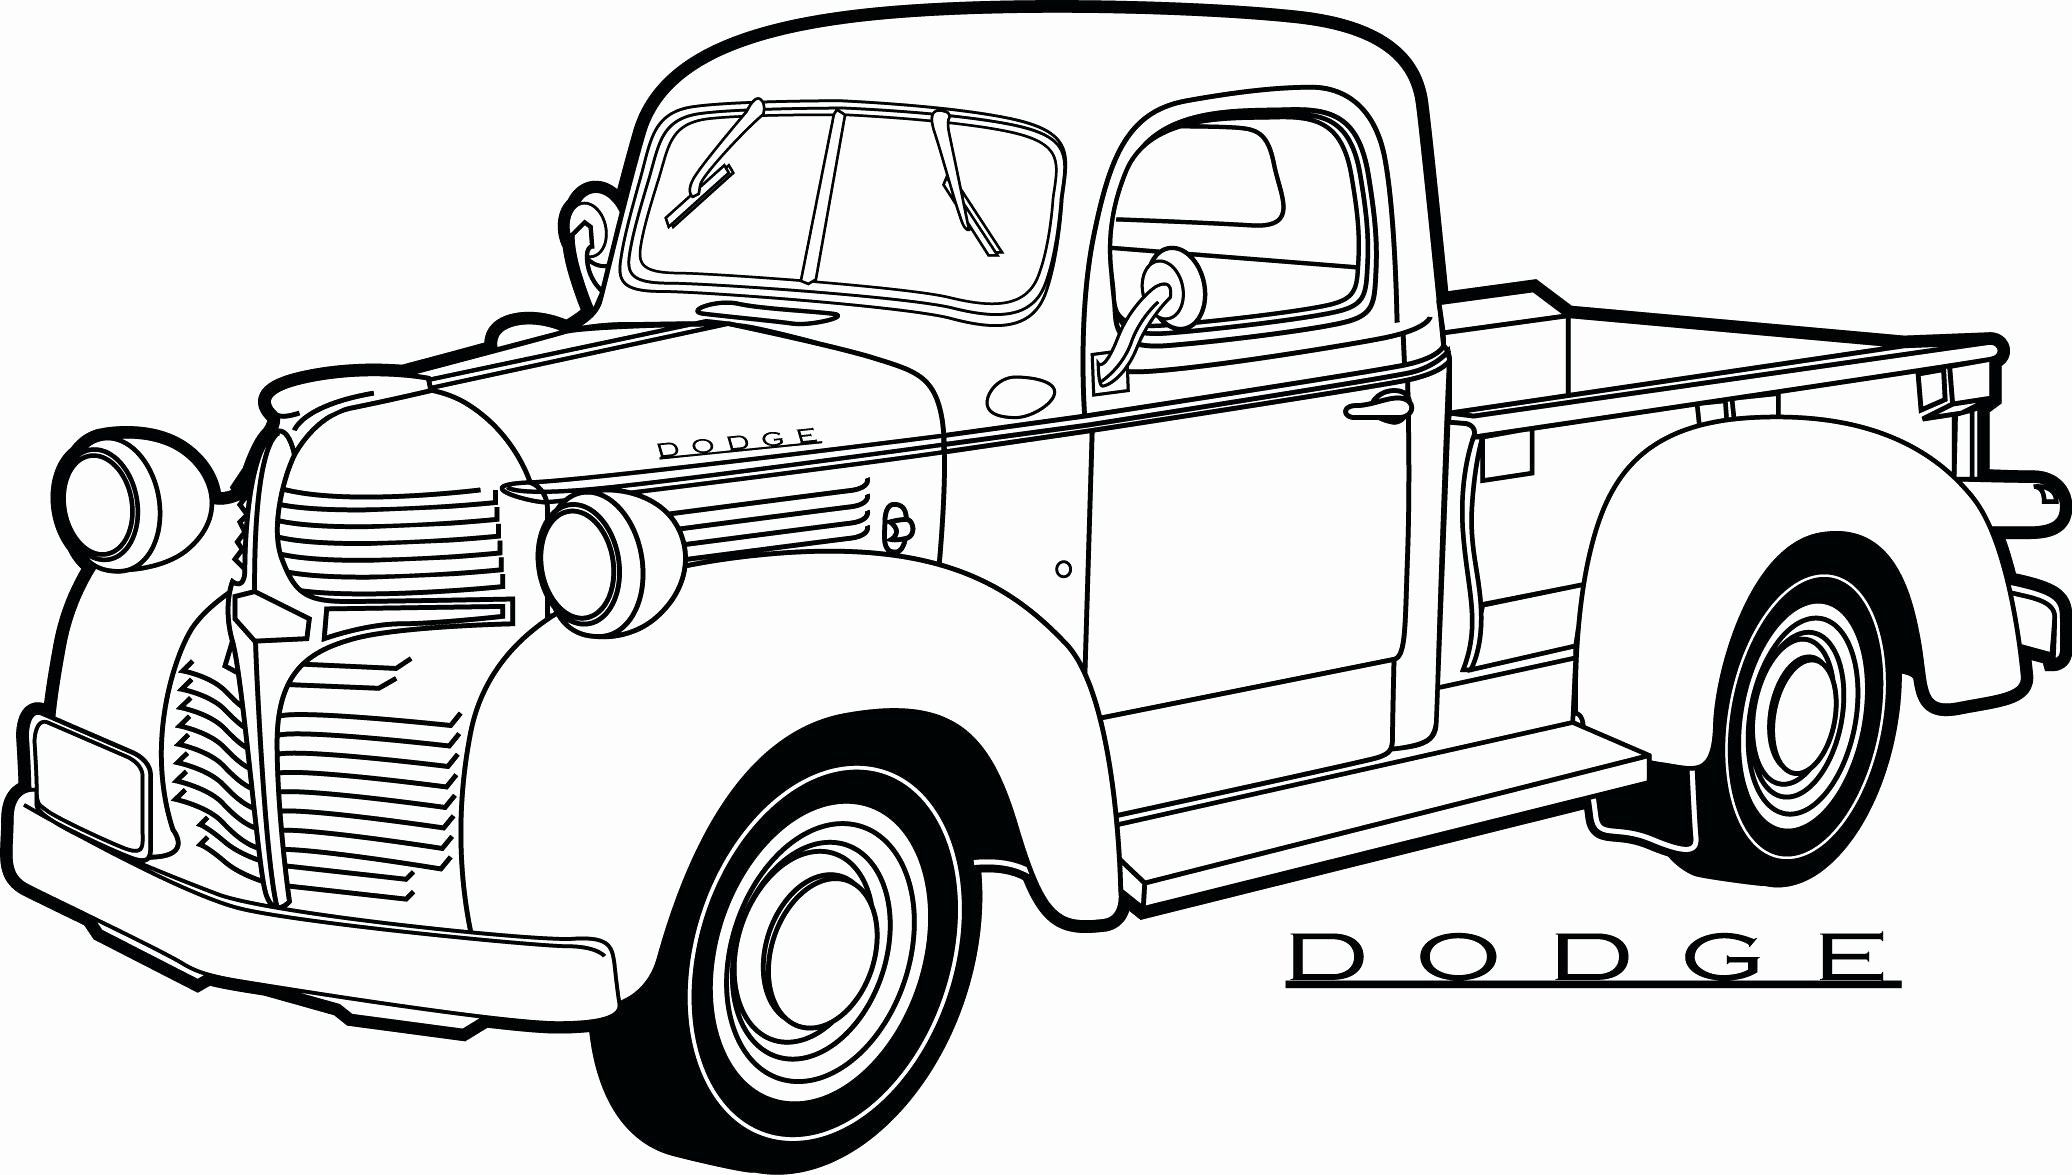 Ford Trucks Coloring Pages Elegant Truck Coloring Pages Truck Coloring Pages Cars Coloring Pages Coloring Pages